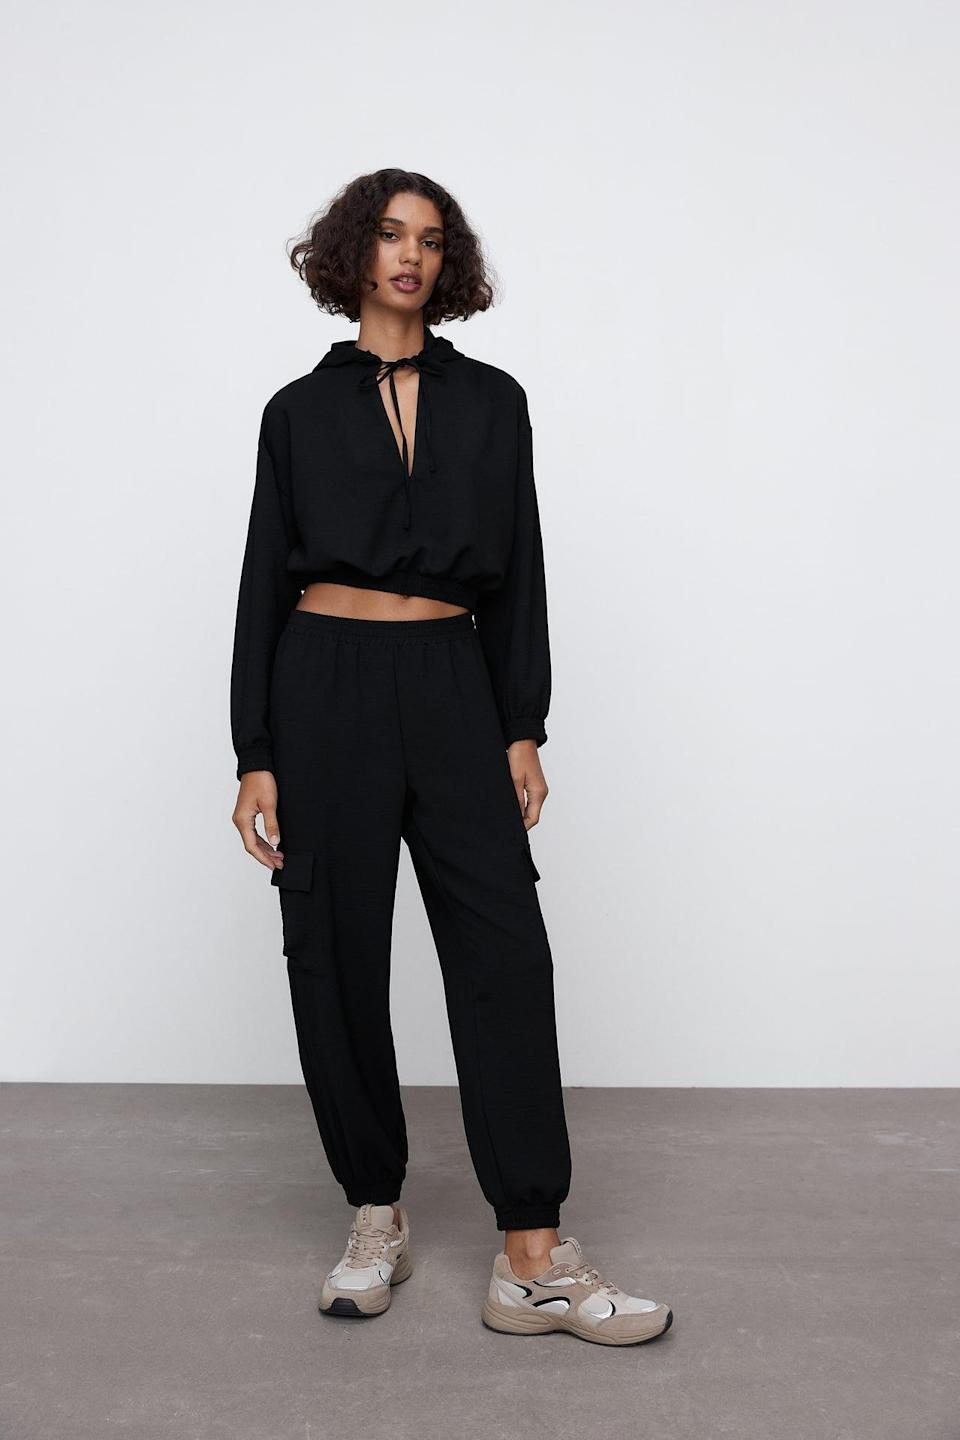 <p>This <span>Zara Flowy Cropped Sweatshirt</span> ($36) and <span>Cargo Joggers</span> ($36) set is classic, with a cute twist. We love the cutouts and tie details.</p>